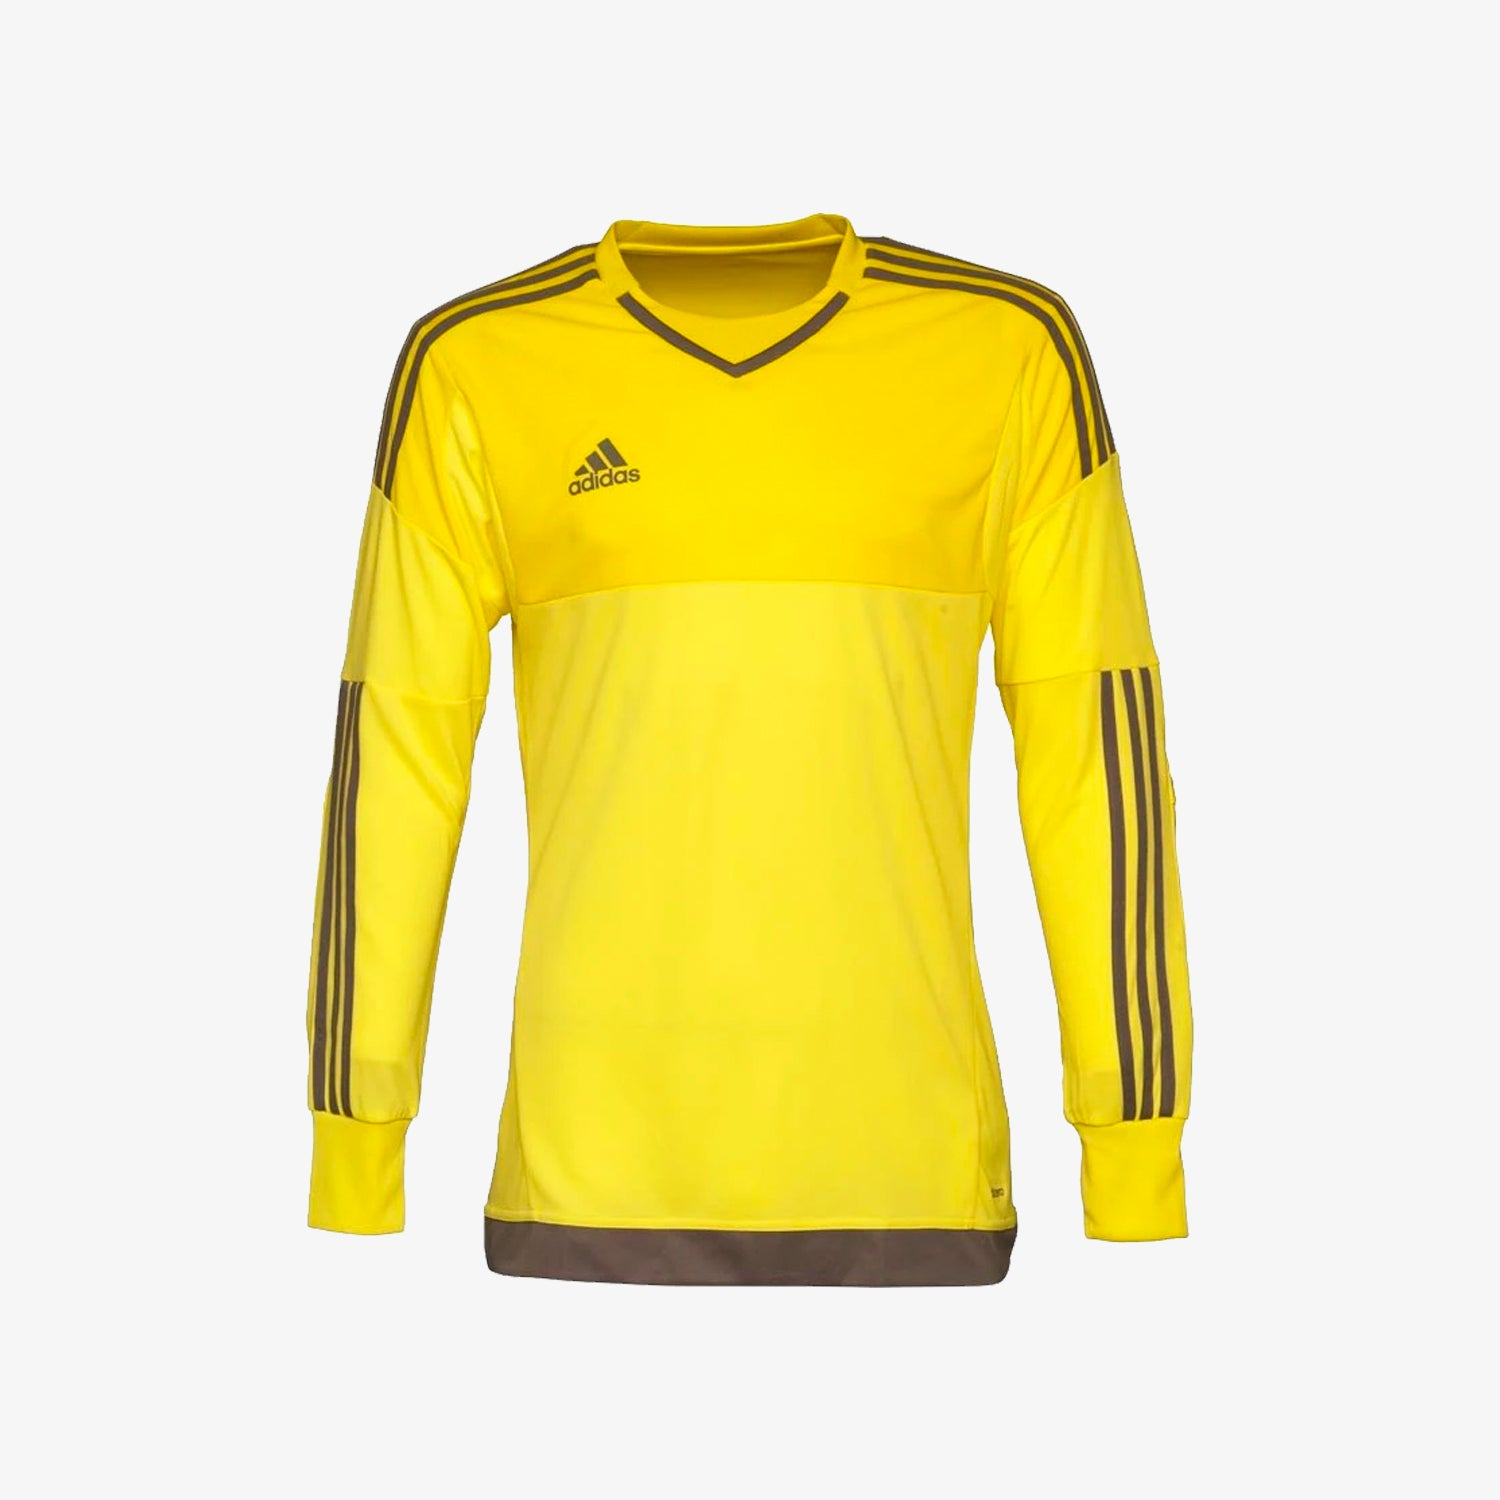 Top 15 Goalkeeper Soccer Jersey Yellow Men's